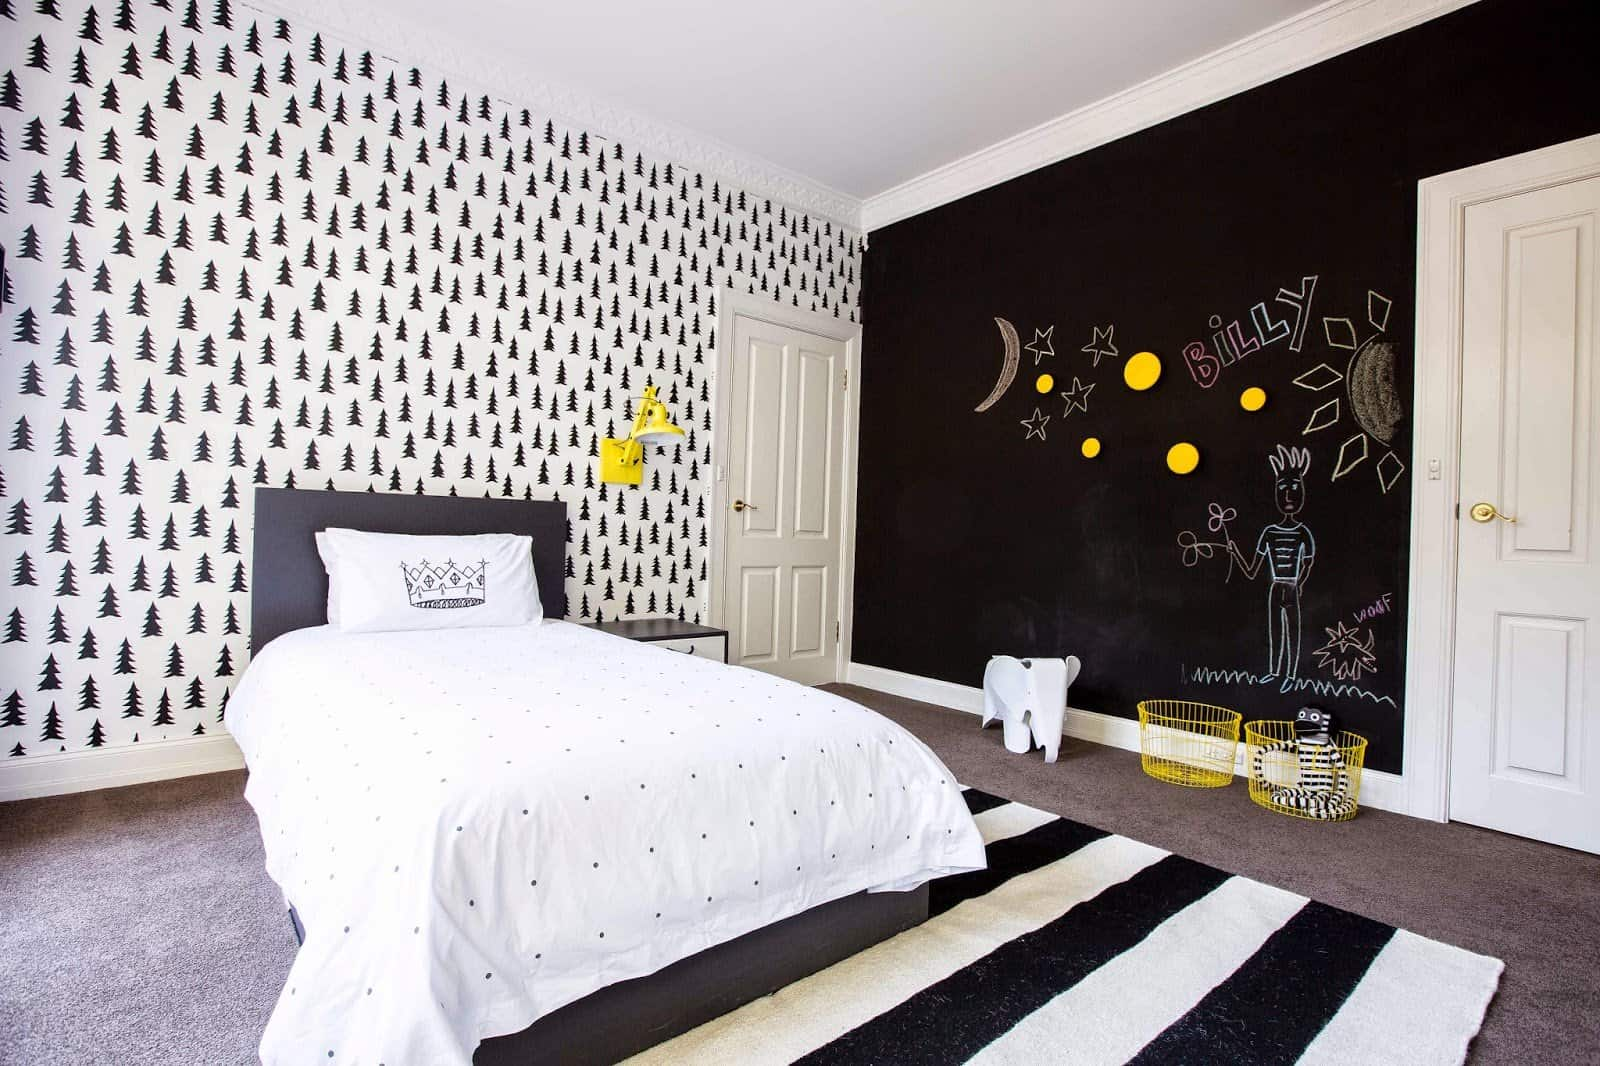 Dark accent wall and dark pattern on the white wallpaper and king size bed with dark headboard